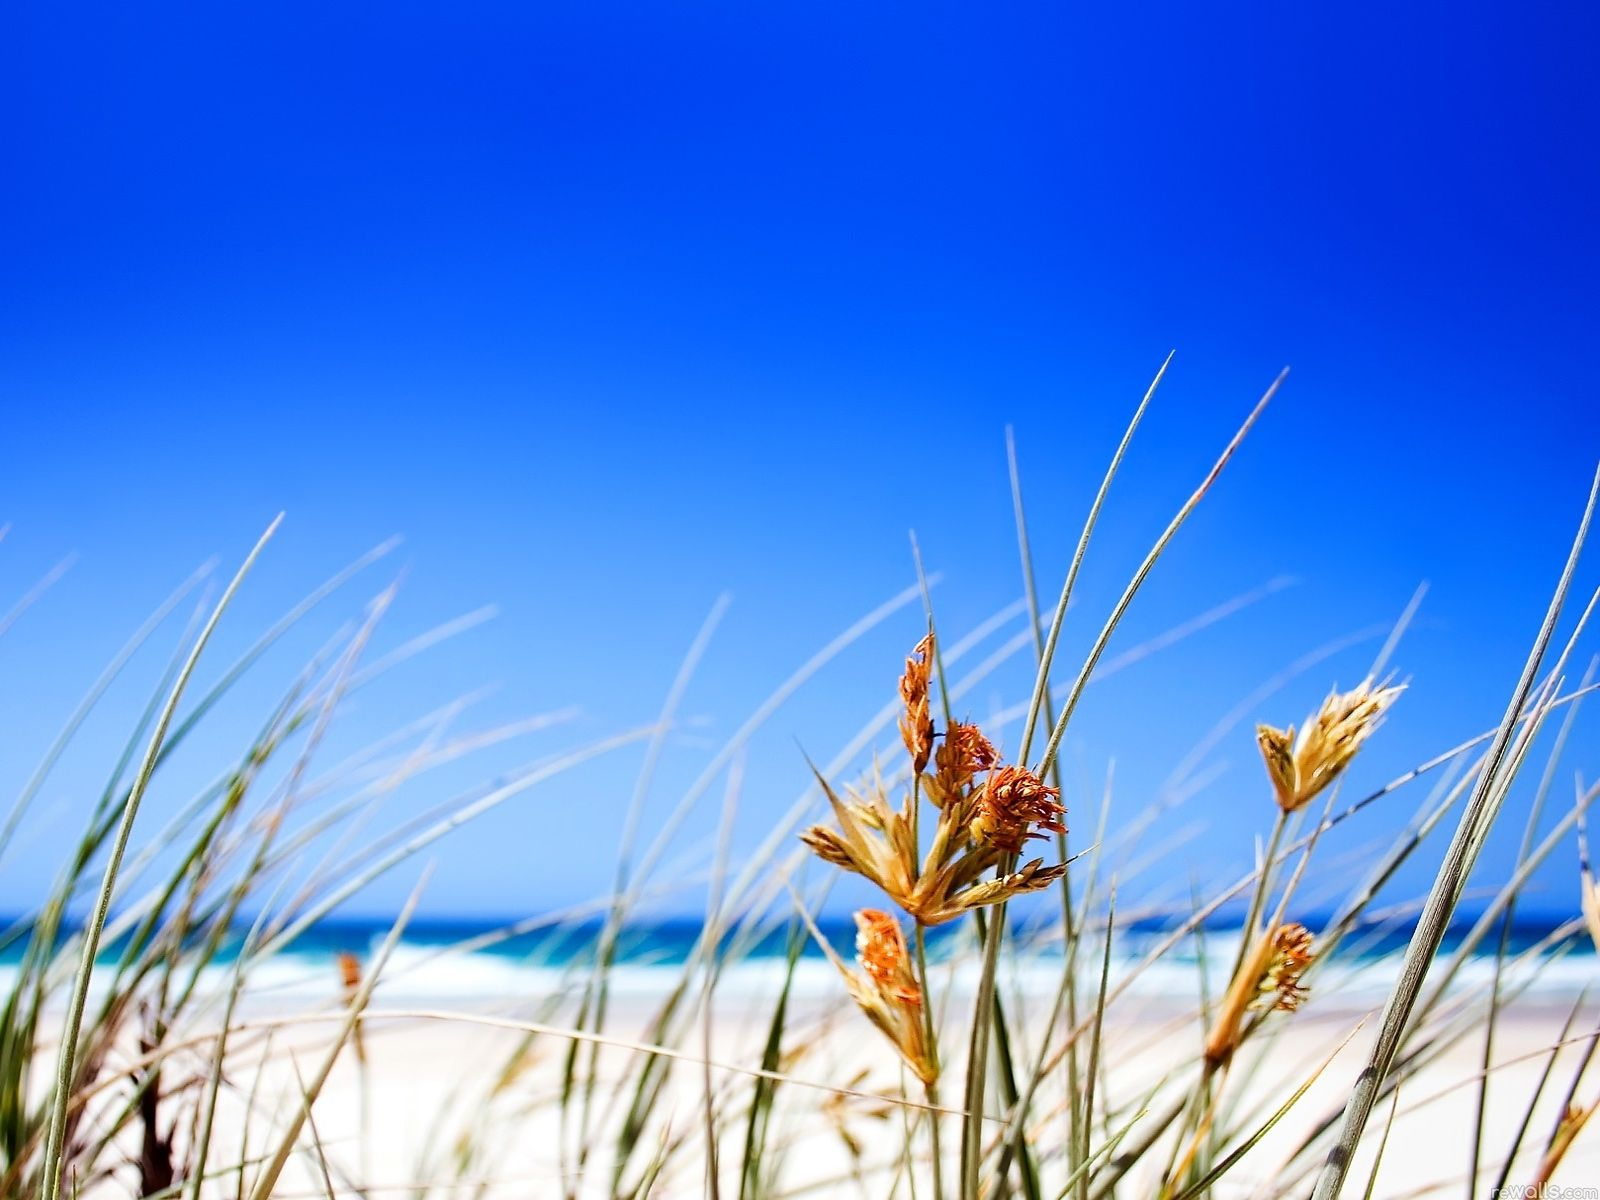 Summer wallpaper free page size 1600x1200 free desktop - Desktop wallpaper 1600x1200 ...